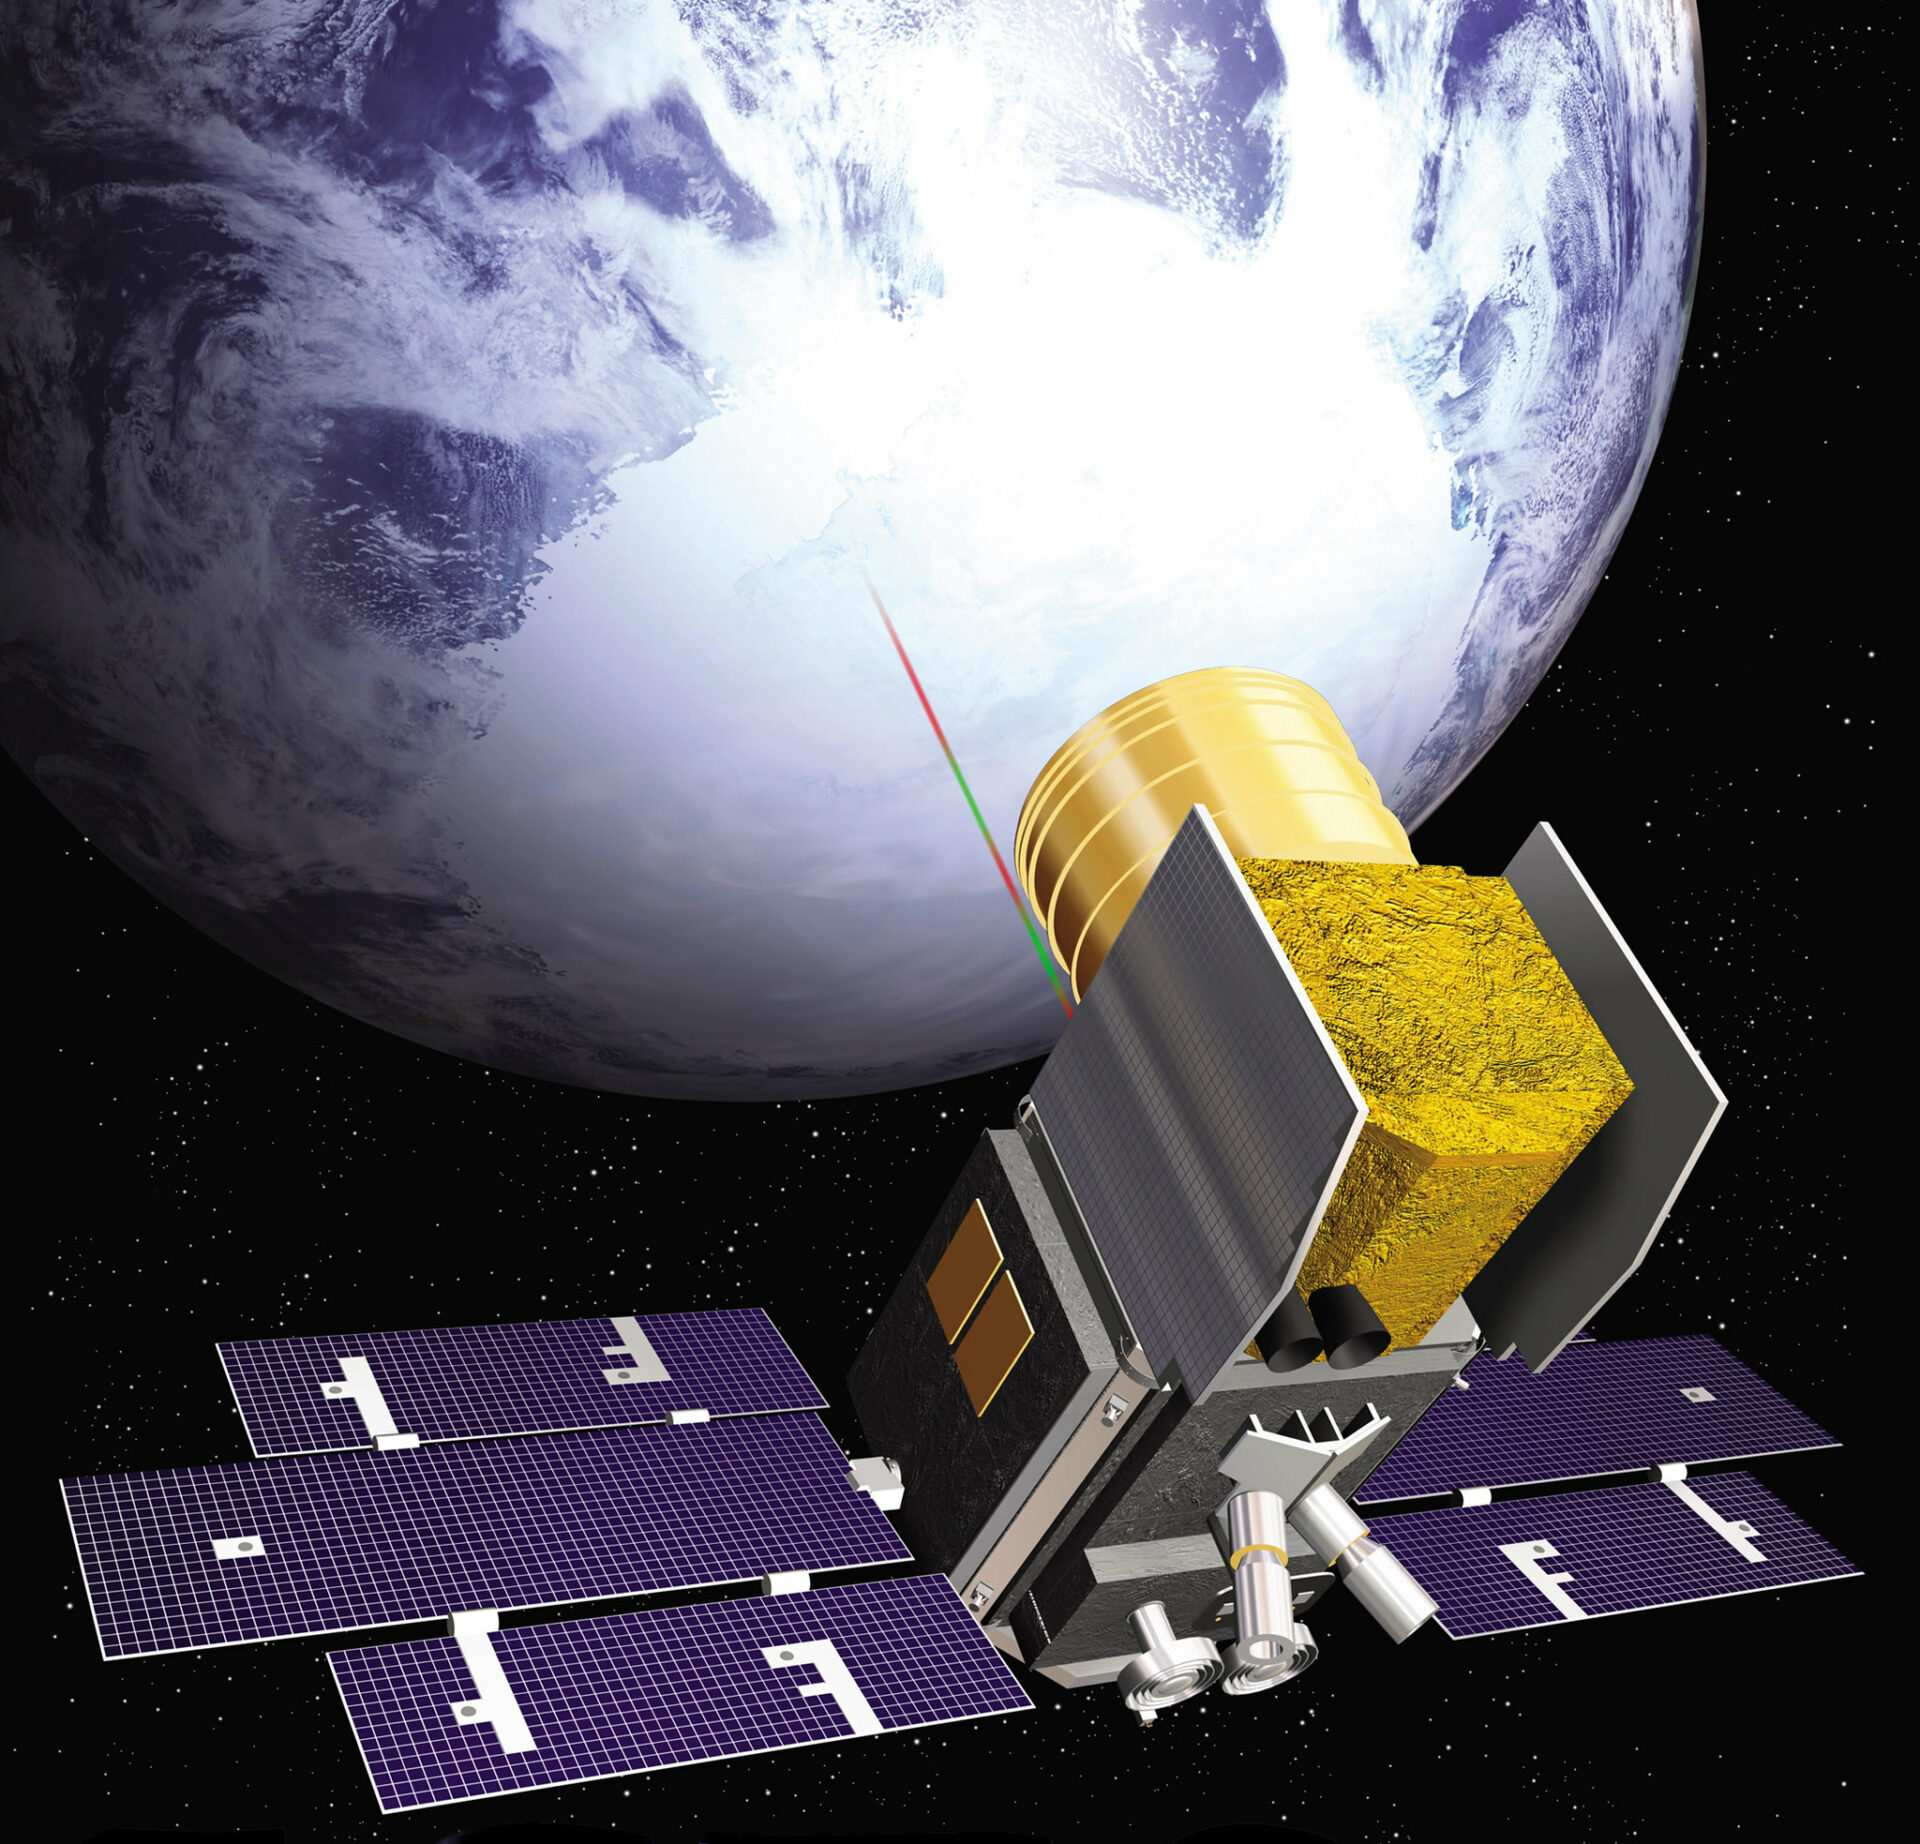 Space lasers will revolutionize military communications, if they work | American Military News